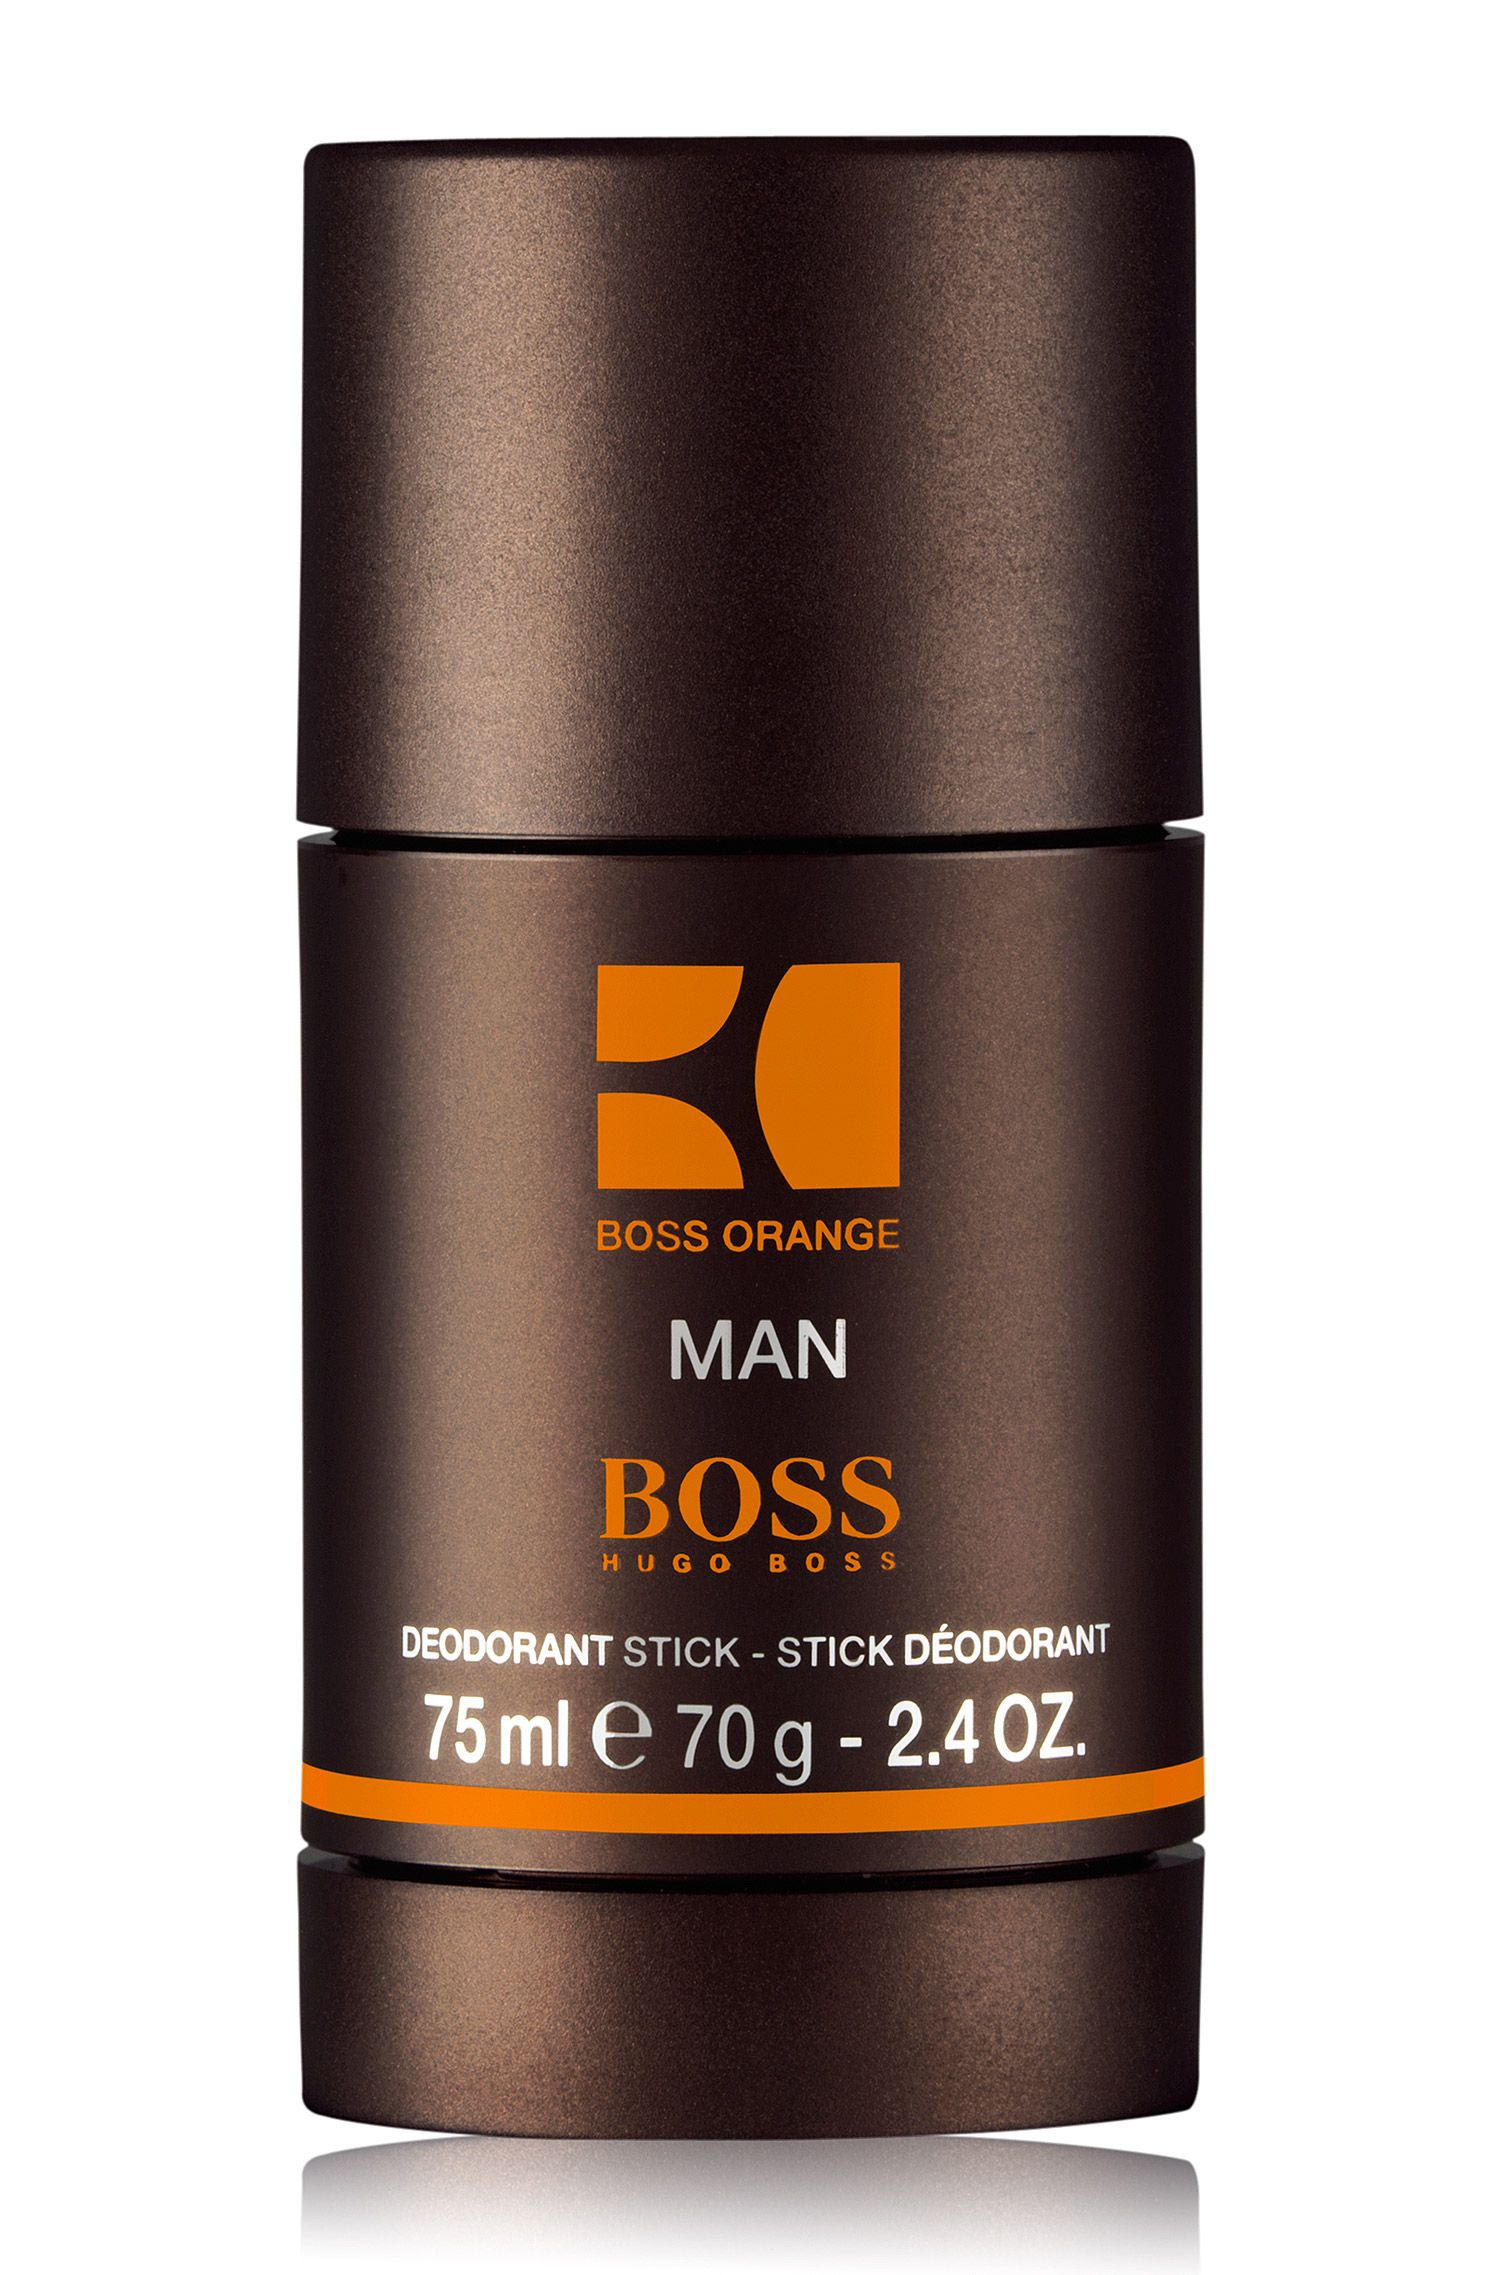 BOSS Orange Man deodorant stick 75ml